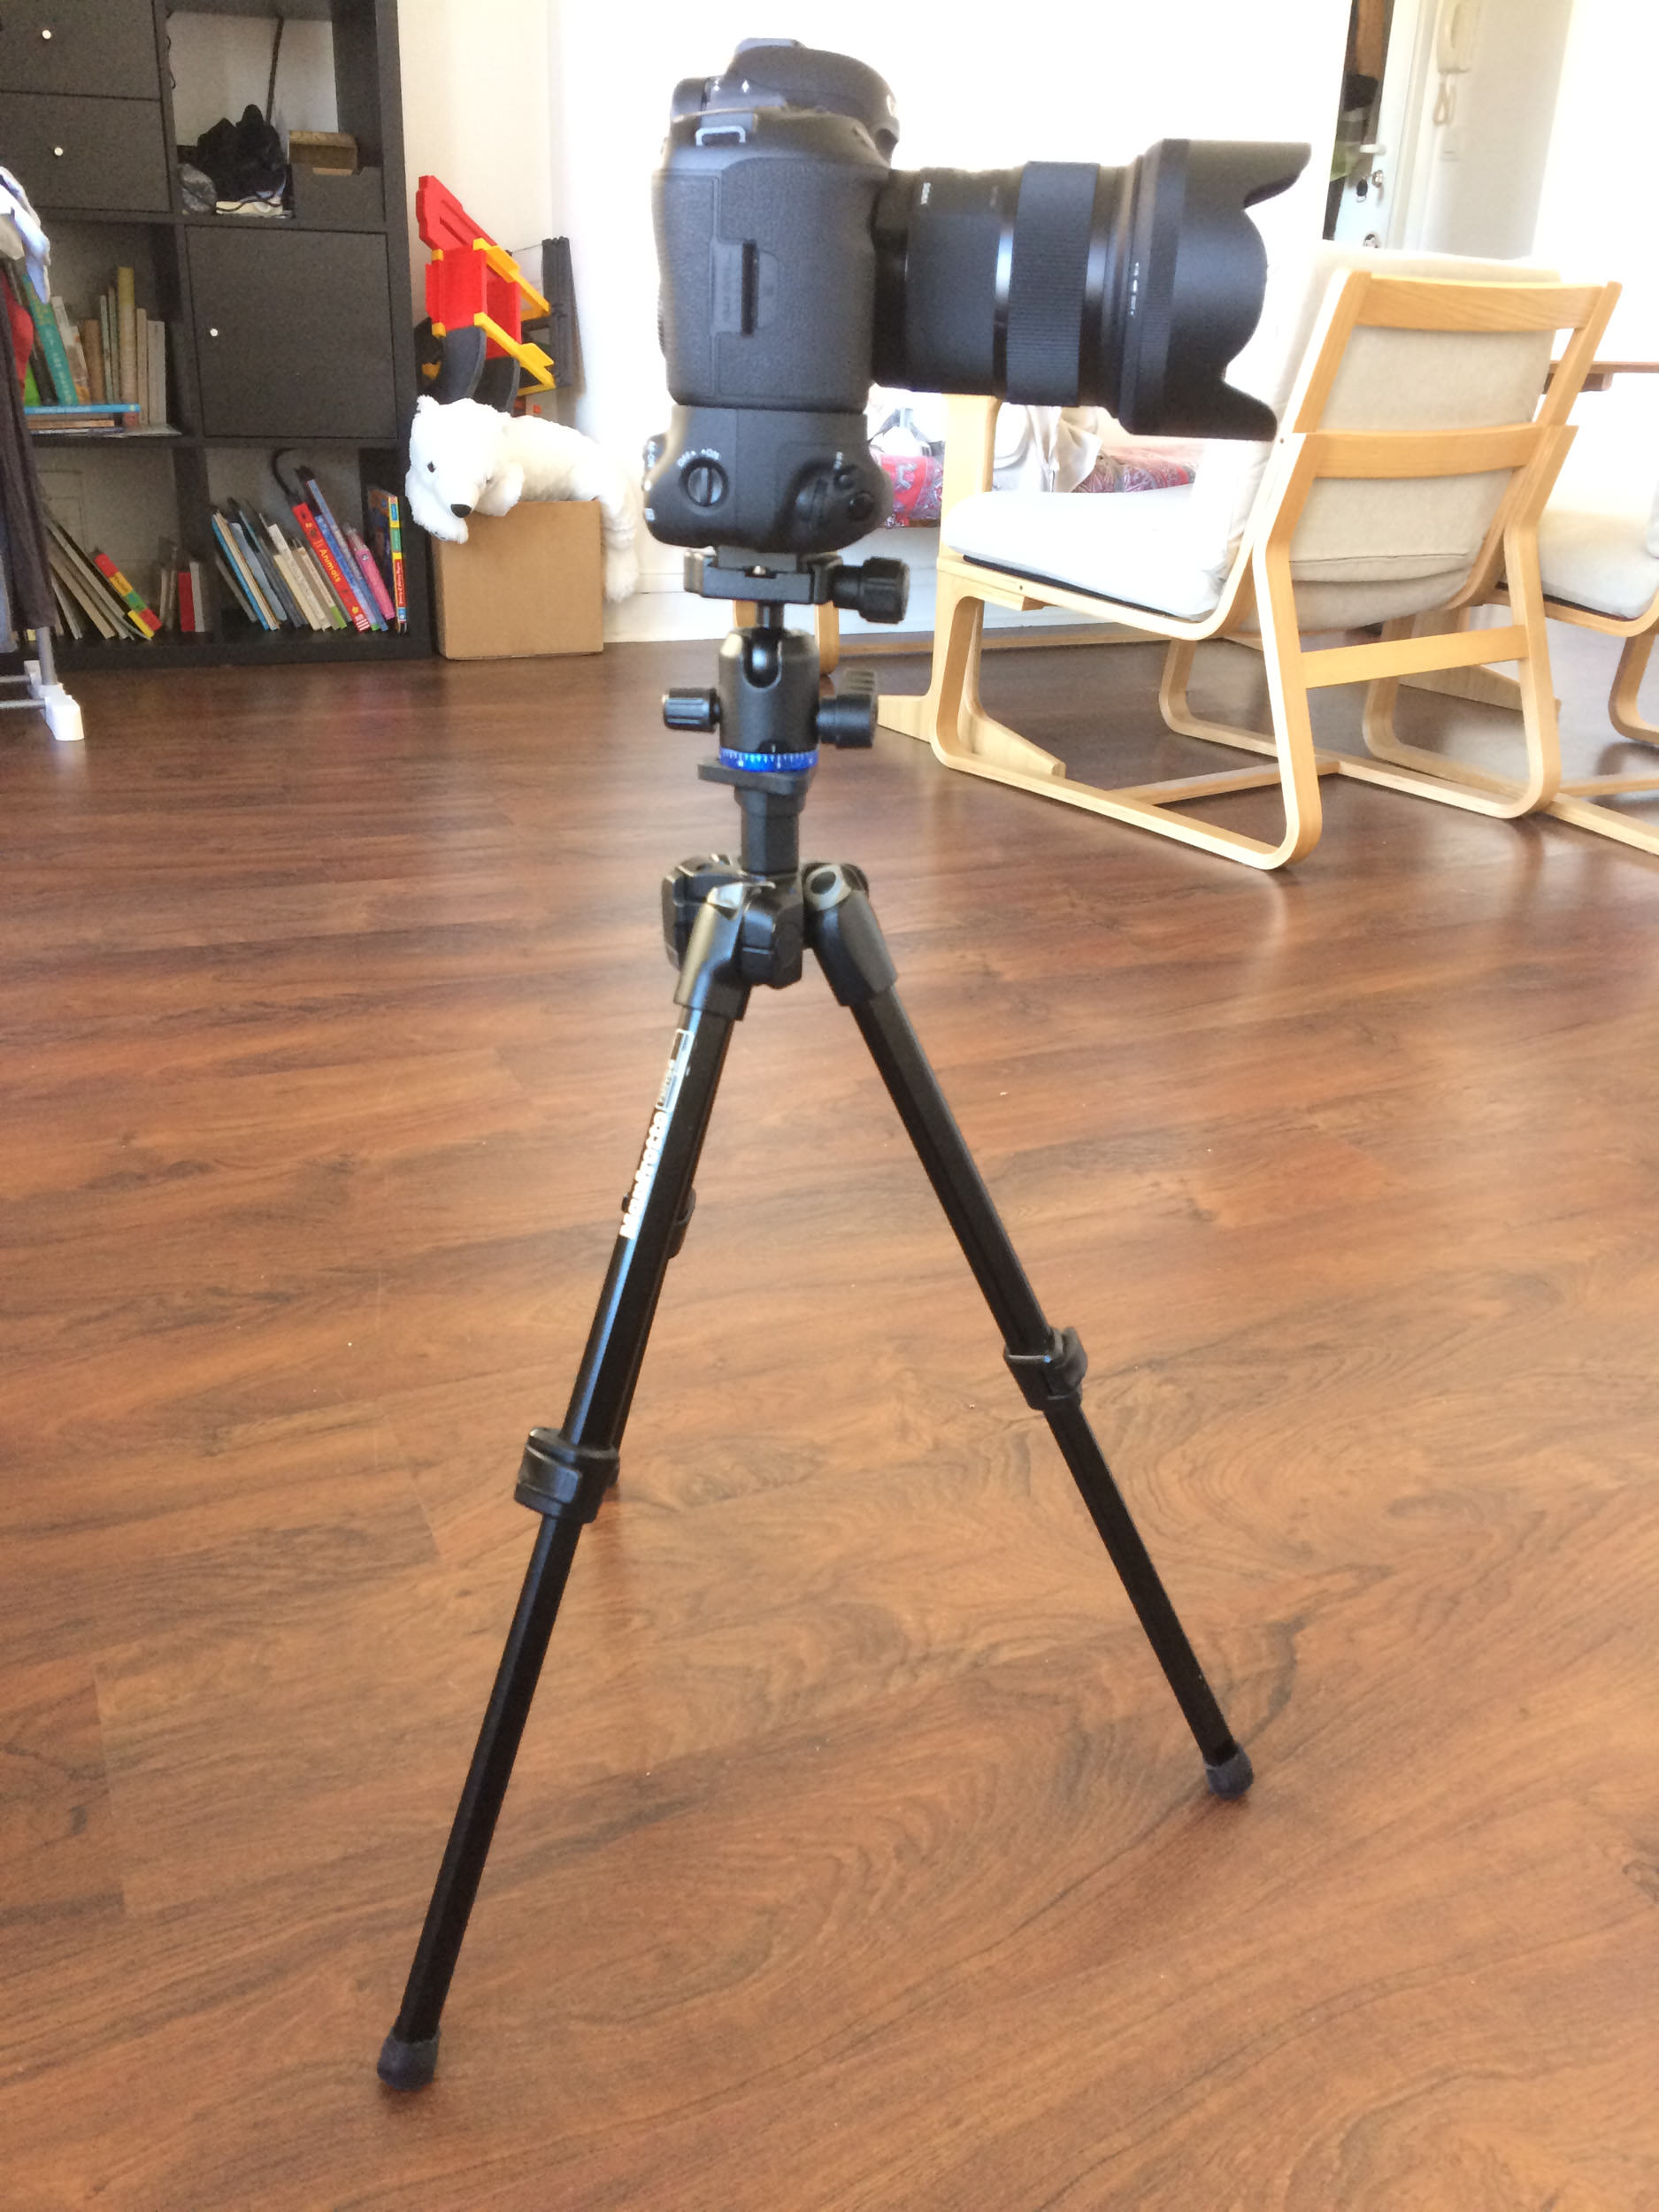 The tripod at it's maximum height of 59cm